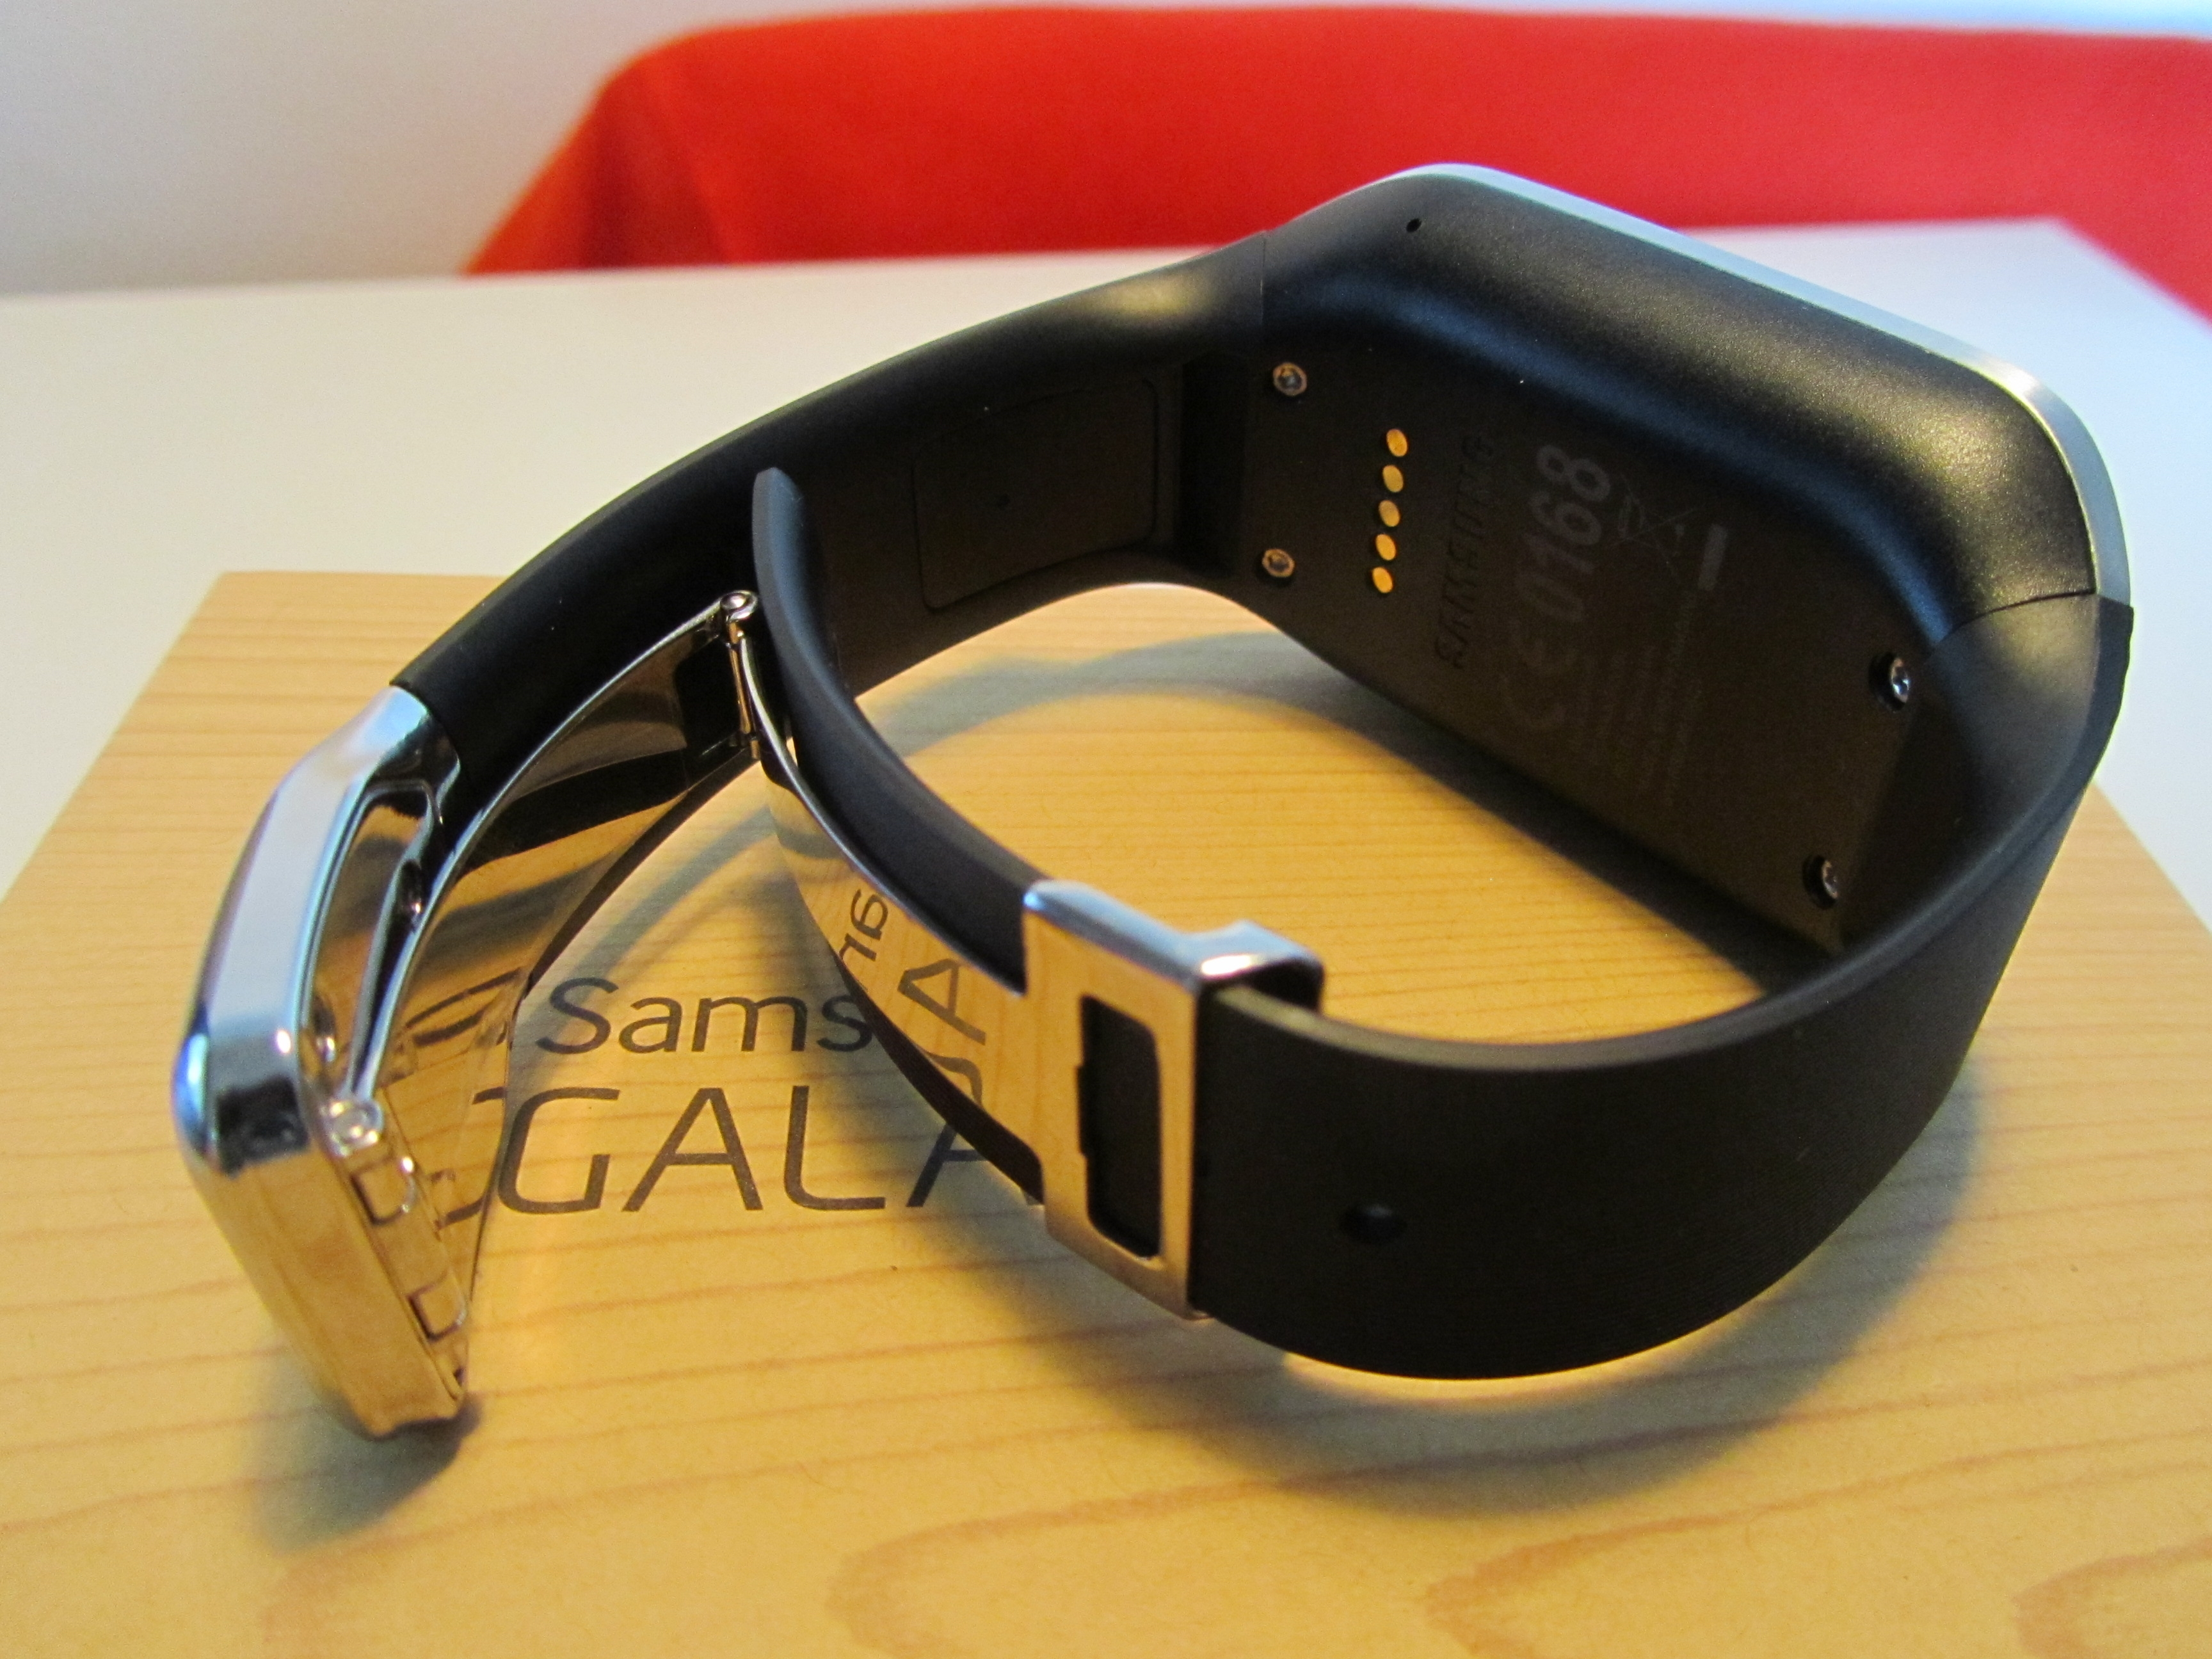 Gear clasp Samsung Galaxy Gear review: A $299 smartwatch that can't send an email…but I hated taking it off